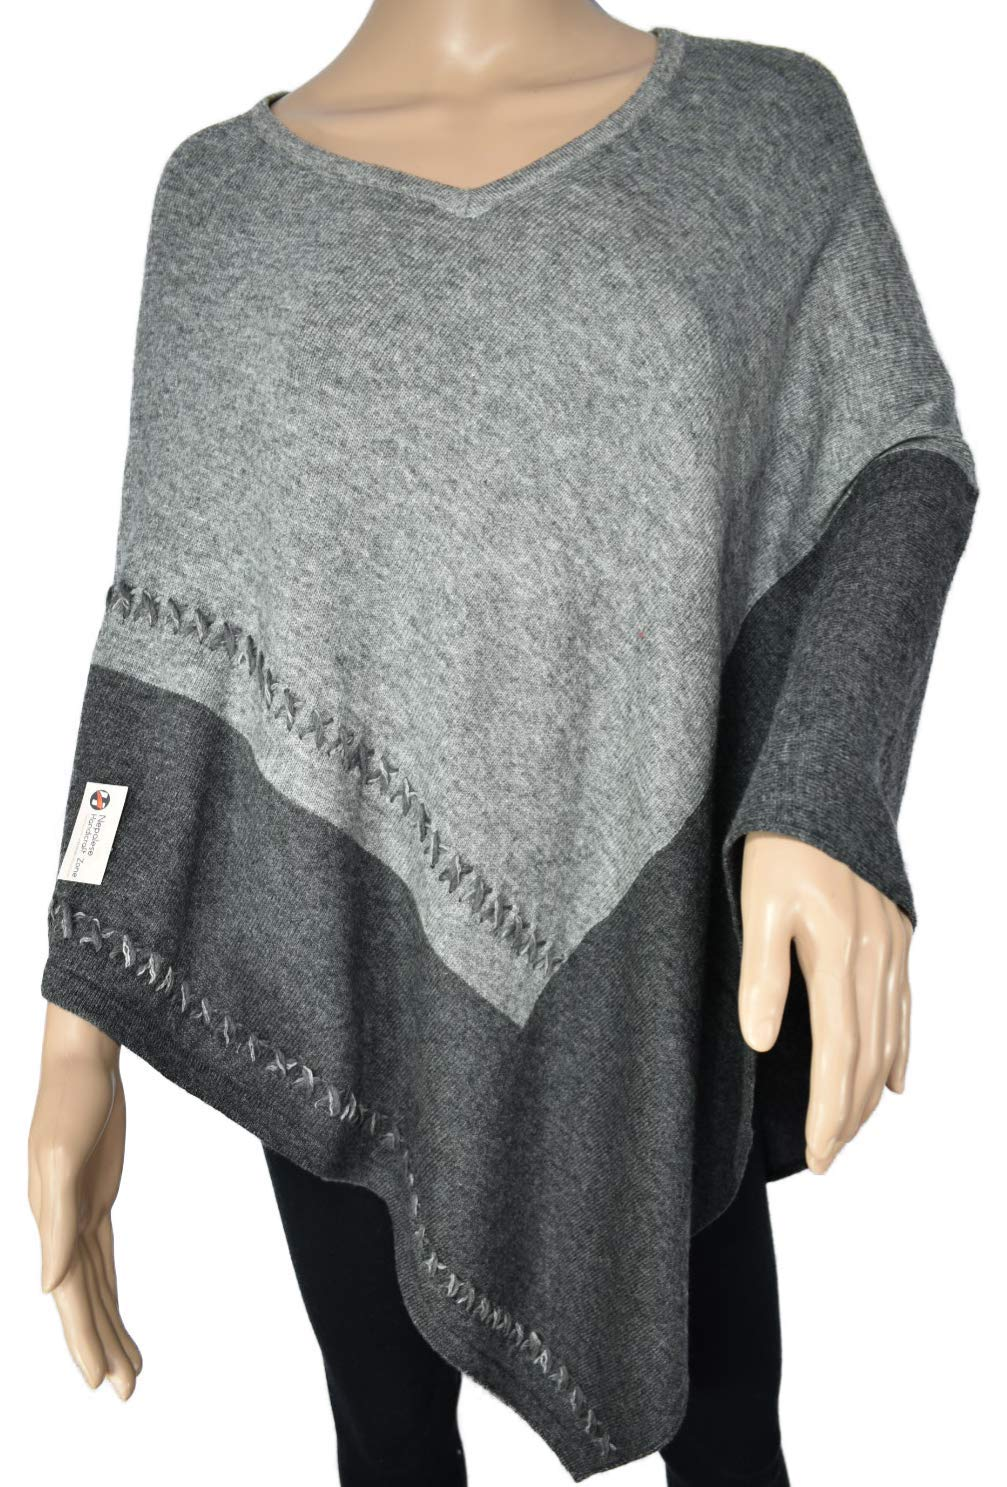 Exclusive Cashmere Poncho - Natural Color Pure Himalayan Cashmere - Handmade in Nepal